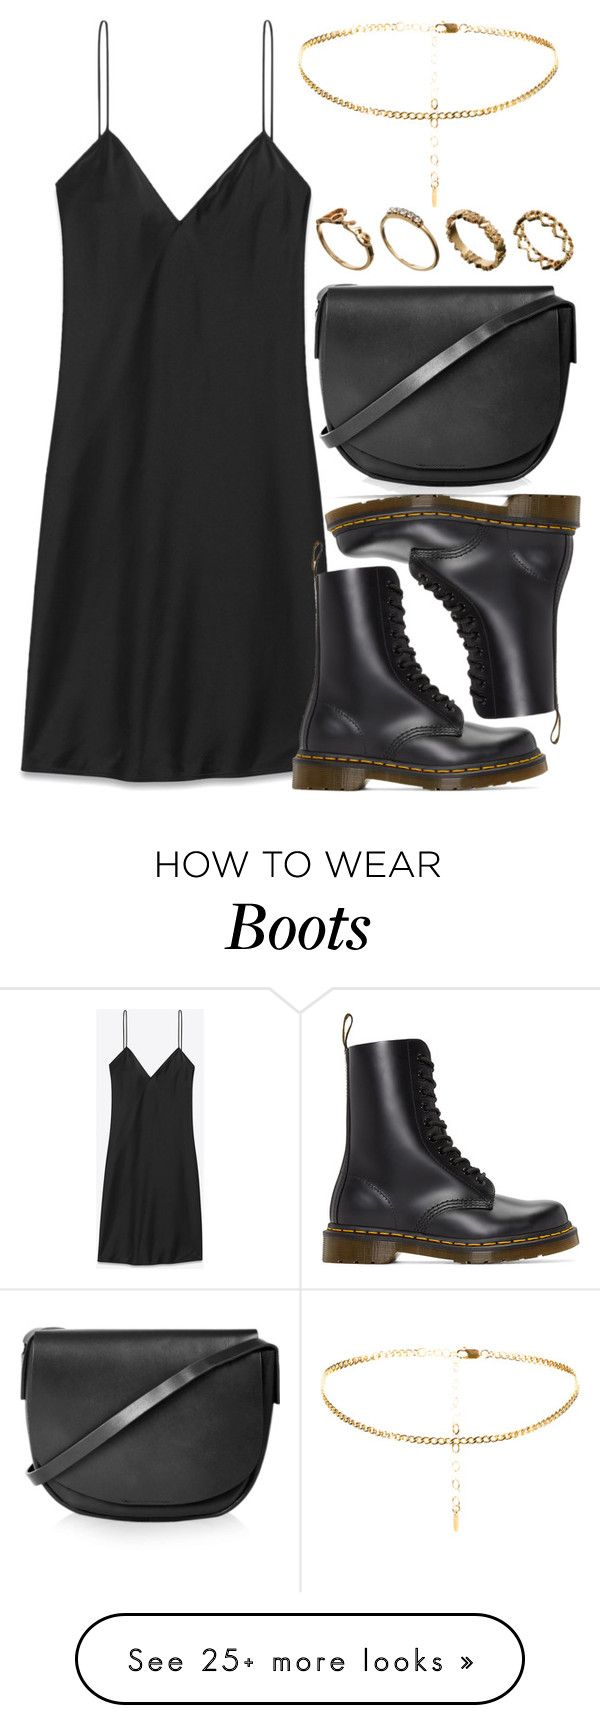 """""""Untitled #5567"""" by rachellouisewilliamson on Polyvore featuring Yves Saint Laurent, Dr. Martens, Topshop and ASOS"""